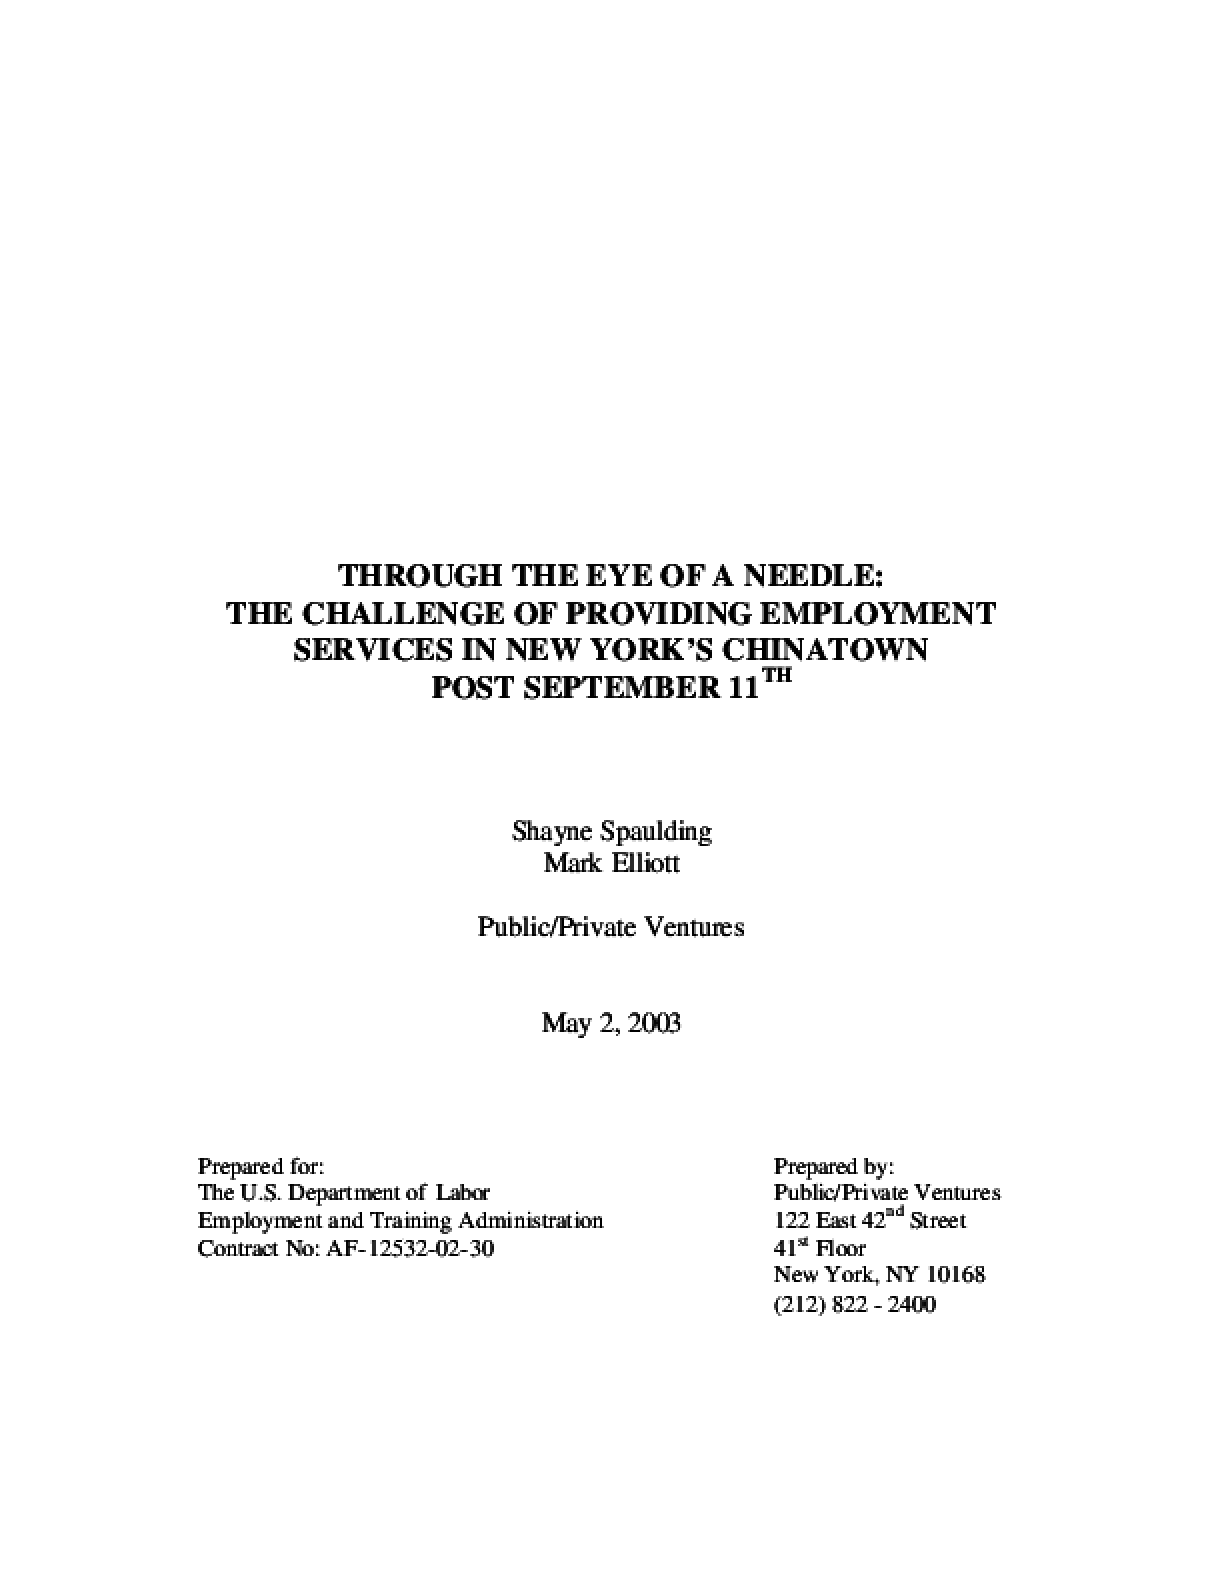 Through the Eye of a Needle: The Challenge of Providing Employment Services in New York's Chinatown Post September 11th